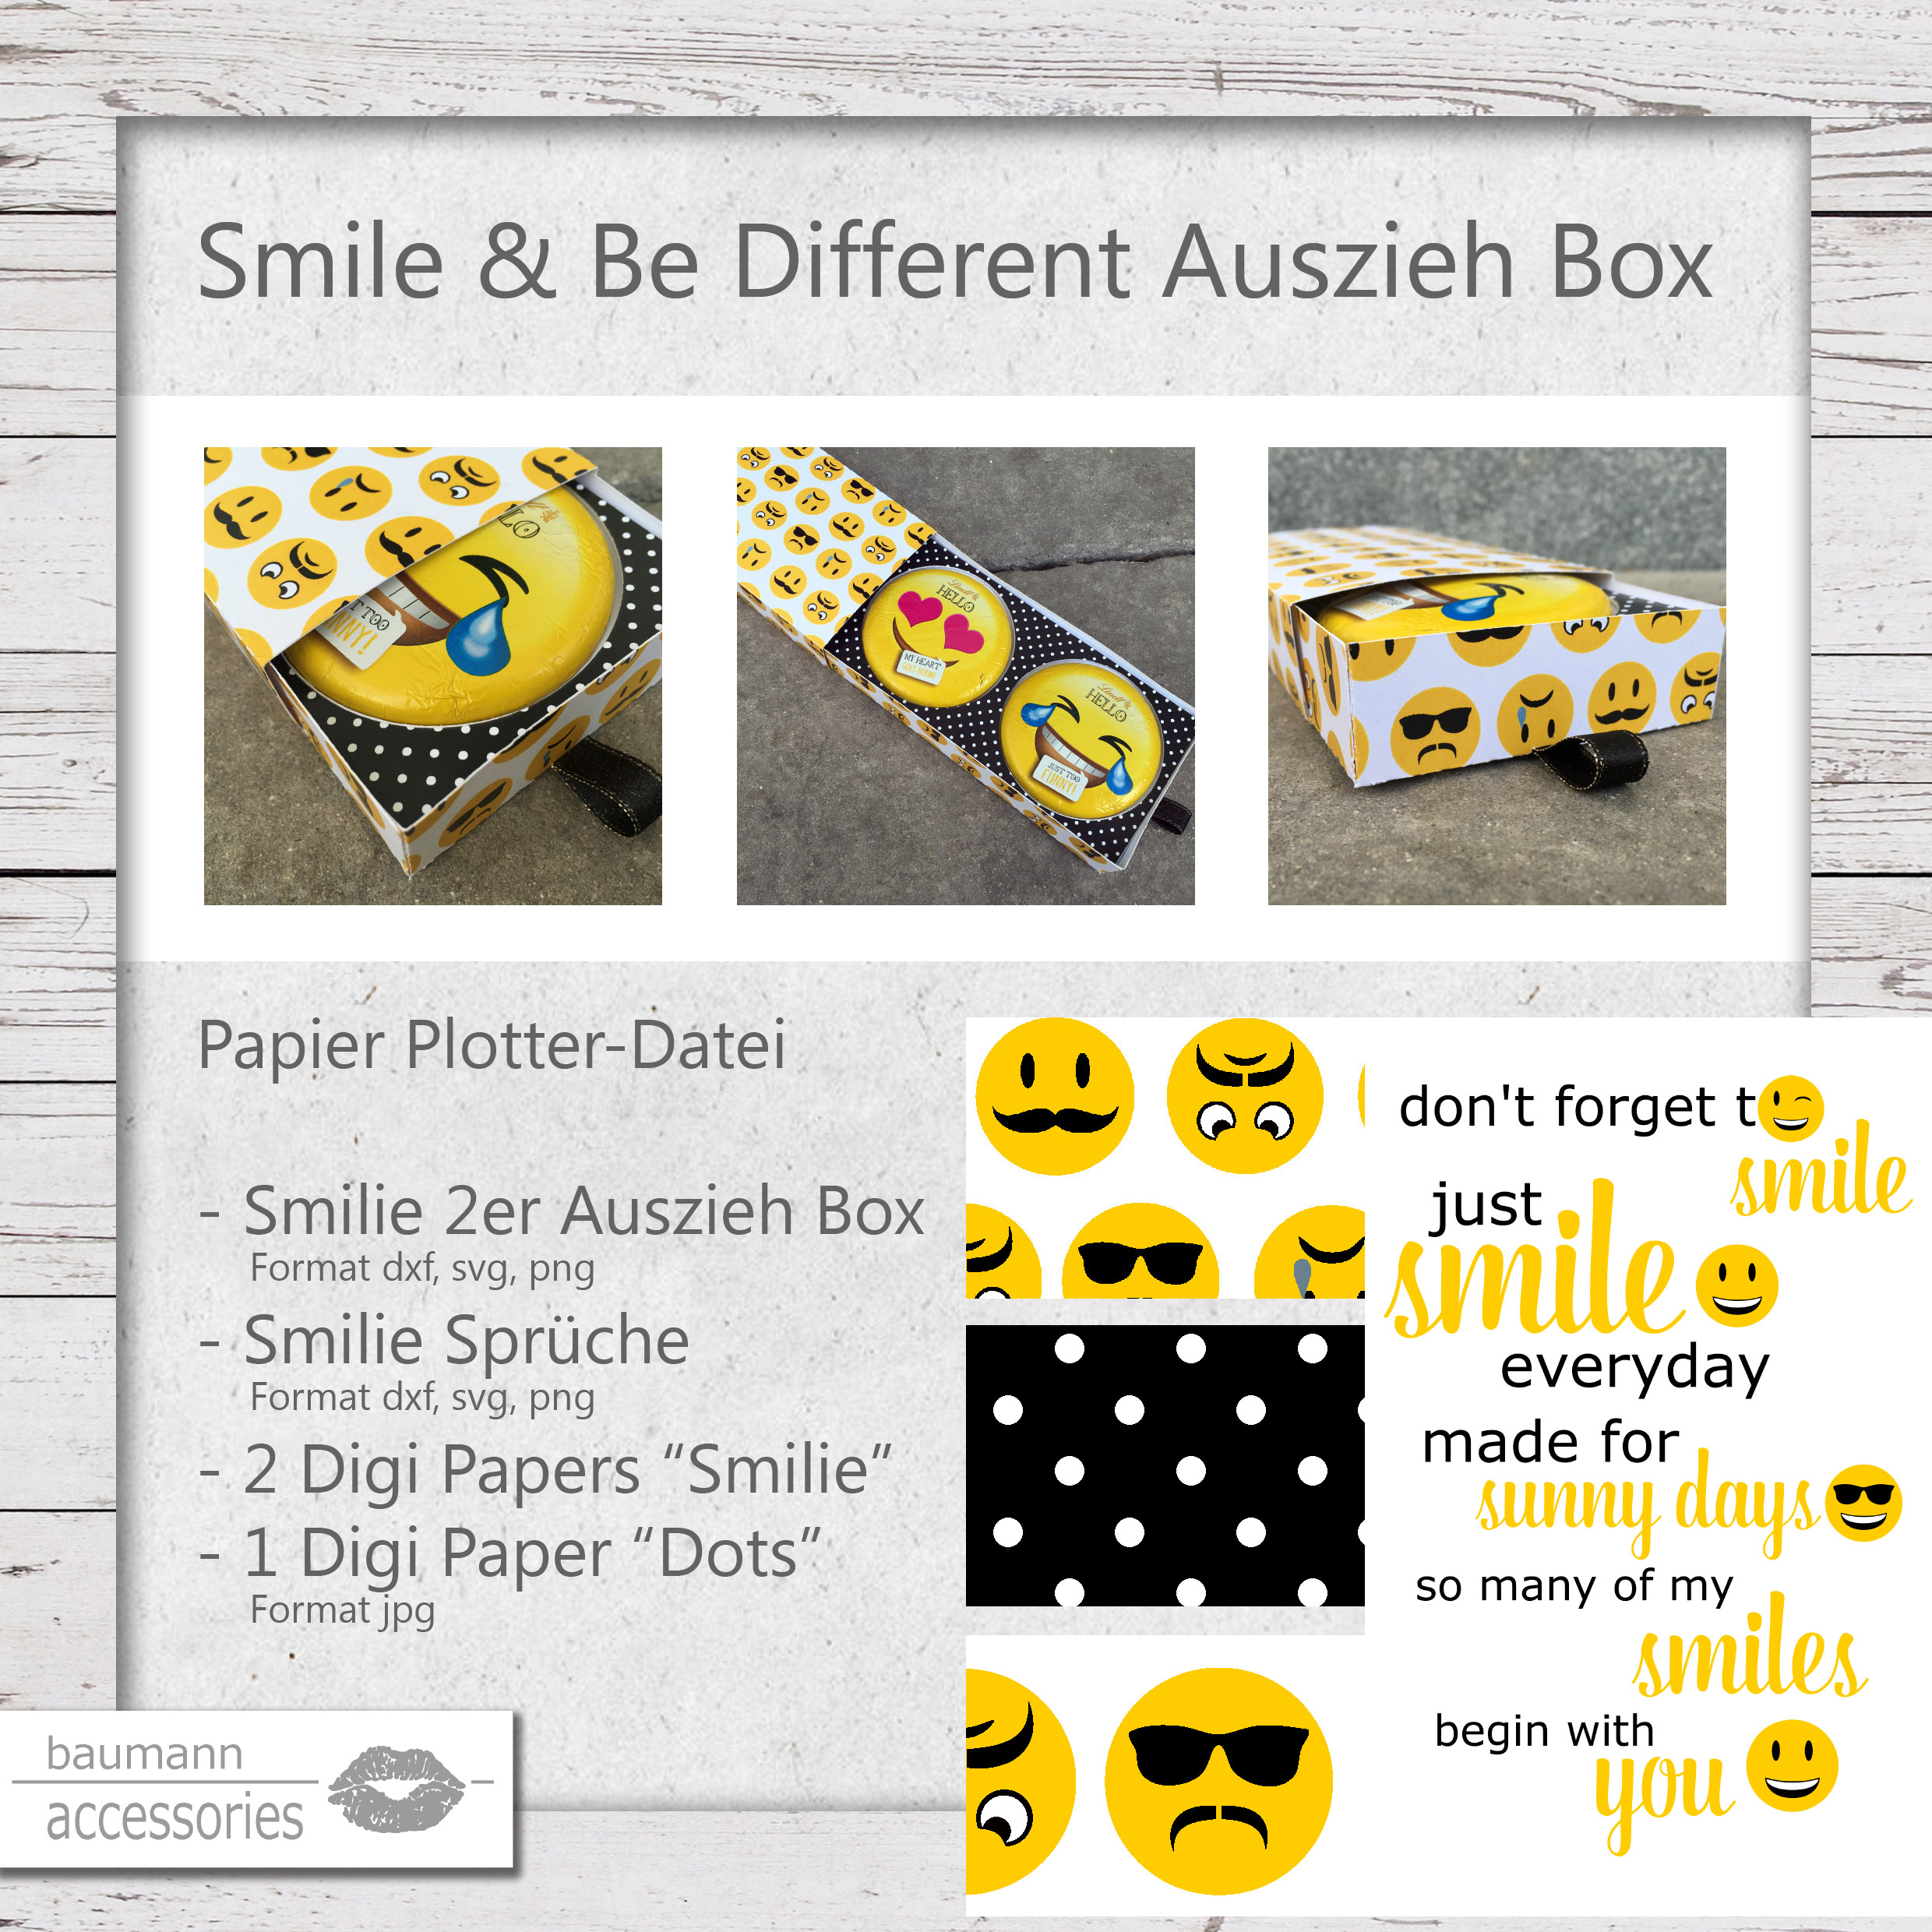 Produkt Smile & Be Different Auszieh Box